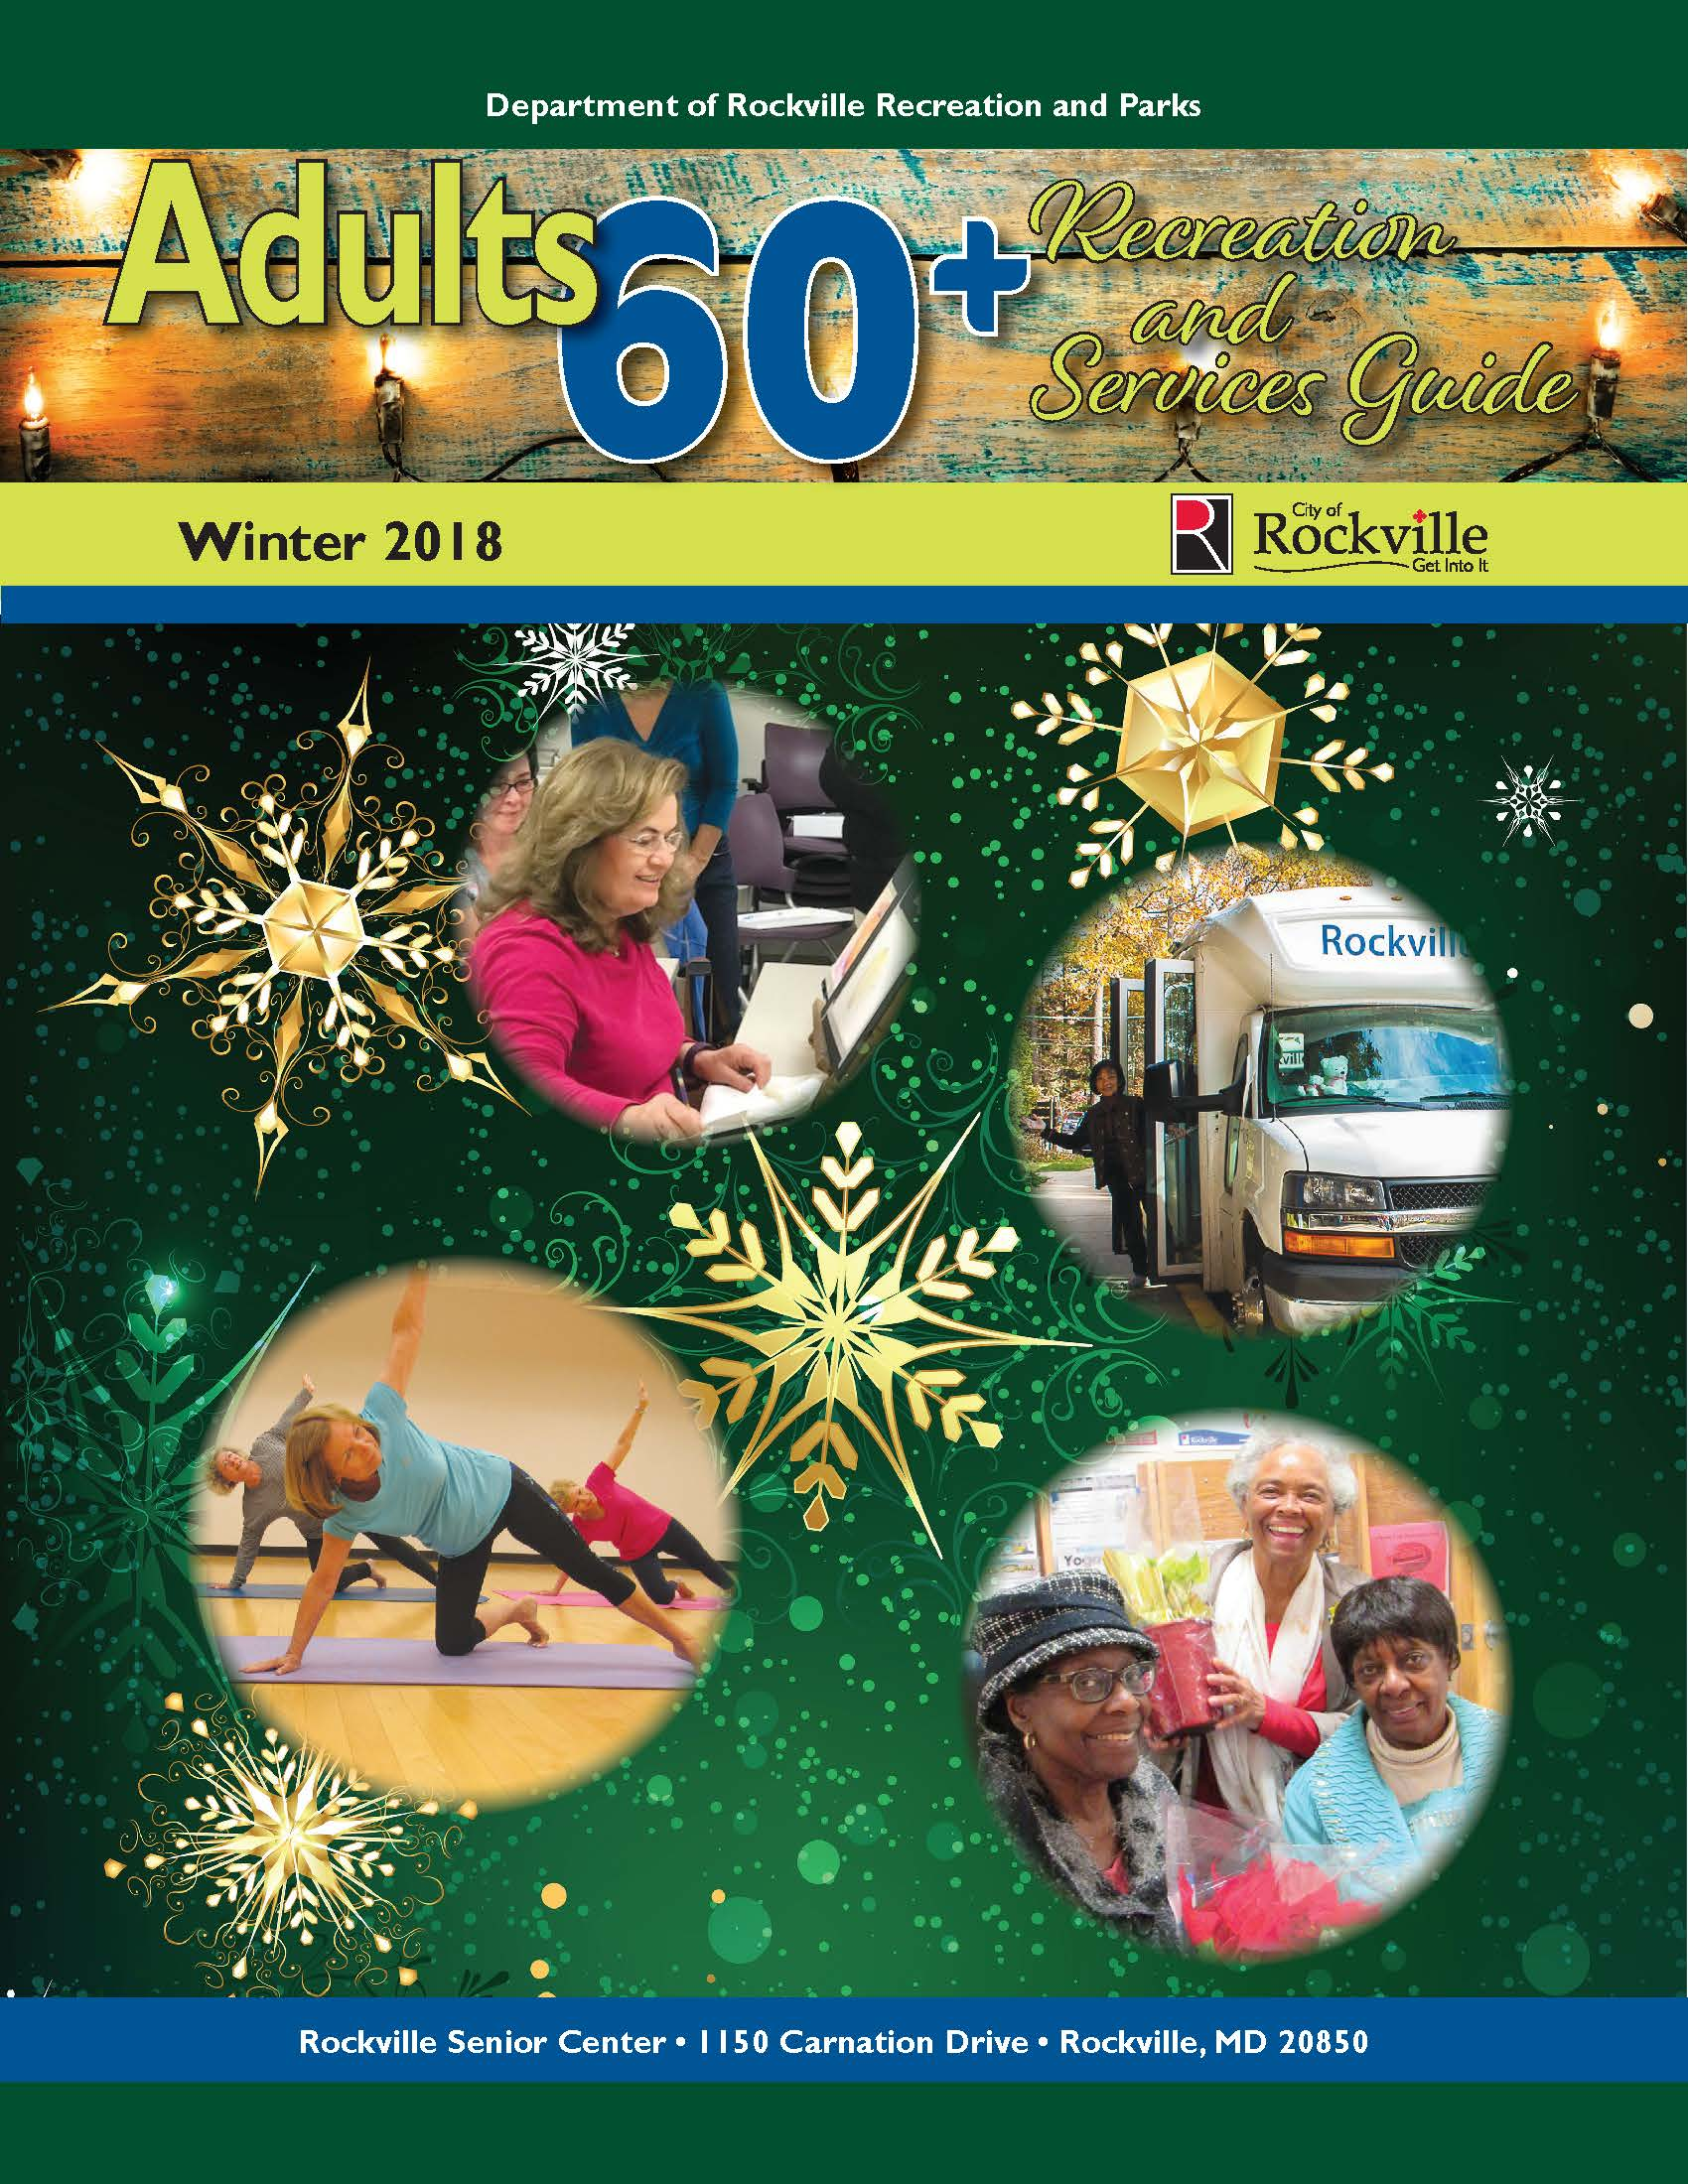 Adults 60+ Winter 2019 Cover